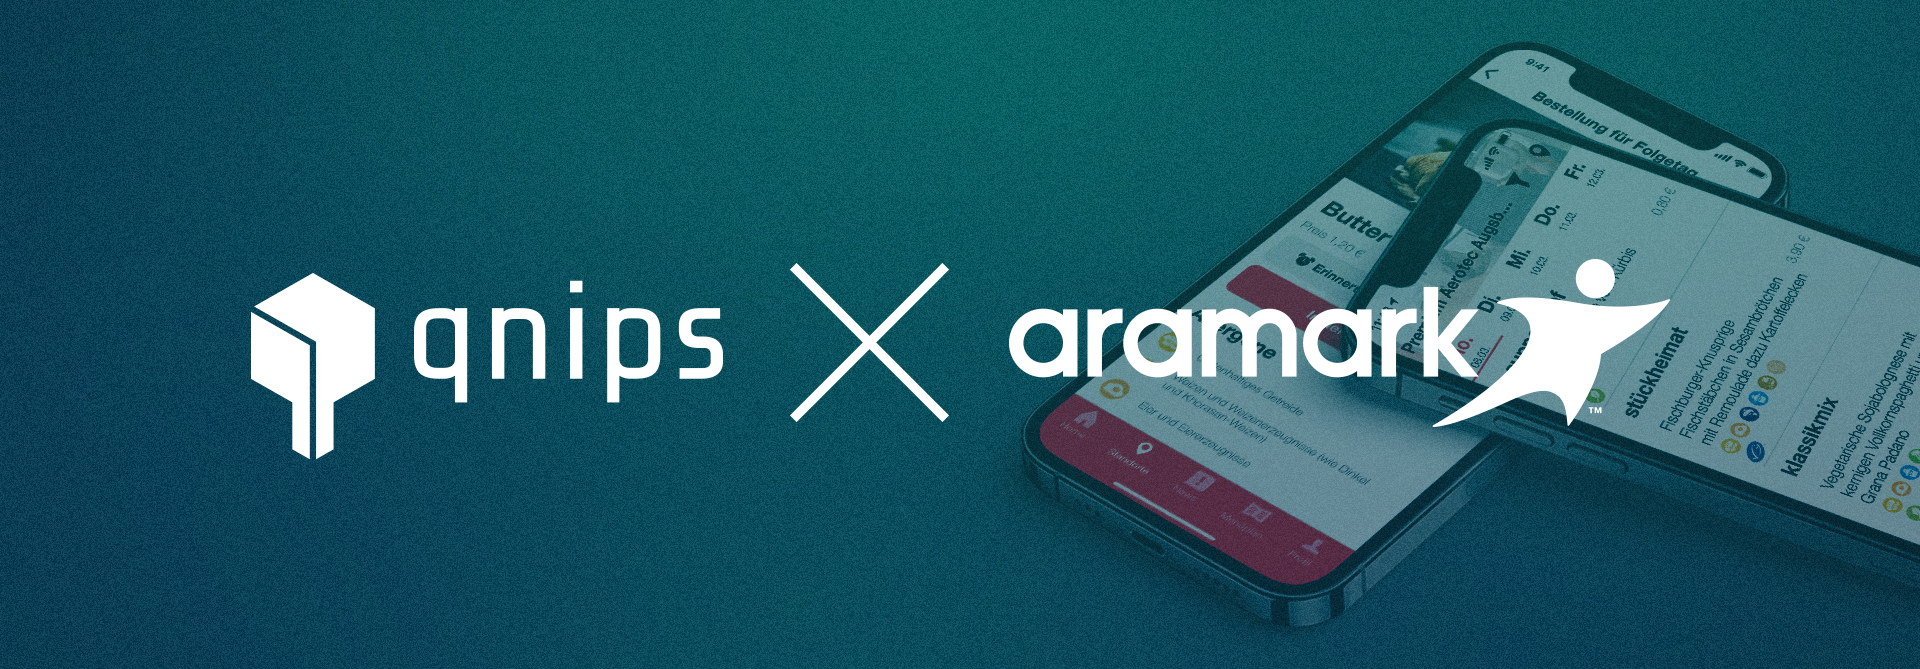 Cooperation between qnips and Aramark Germany